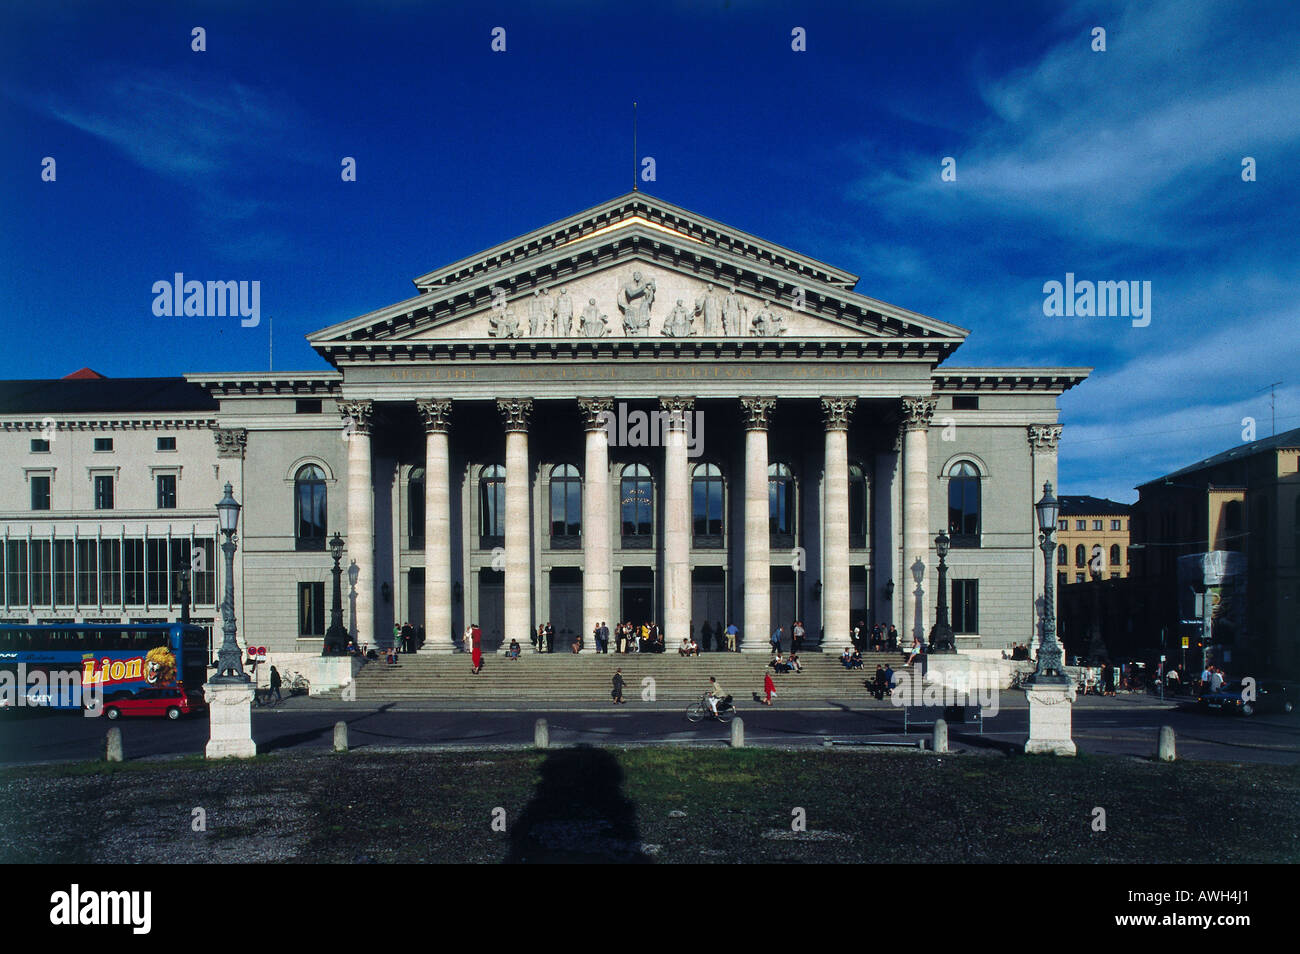 Germany, Bavaria, Munich, Nationaltheater, Neo-Classical façade, Bavarian State Opera Orchestra, and Munich Opera Festival - Stock Image